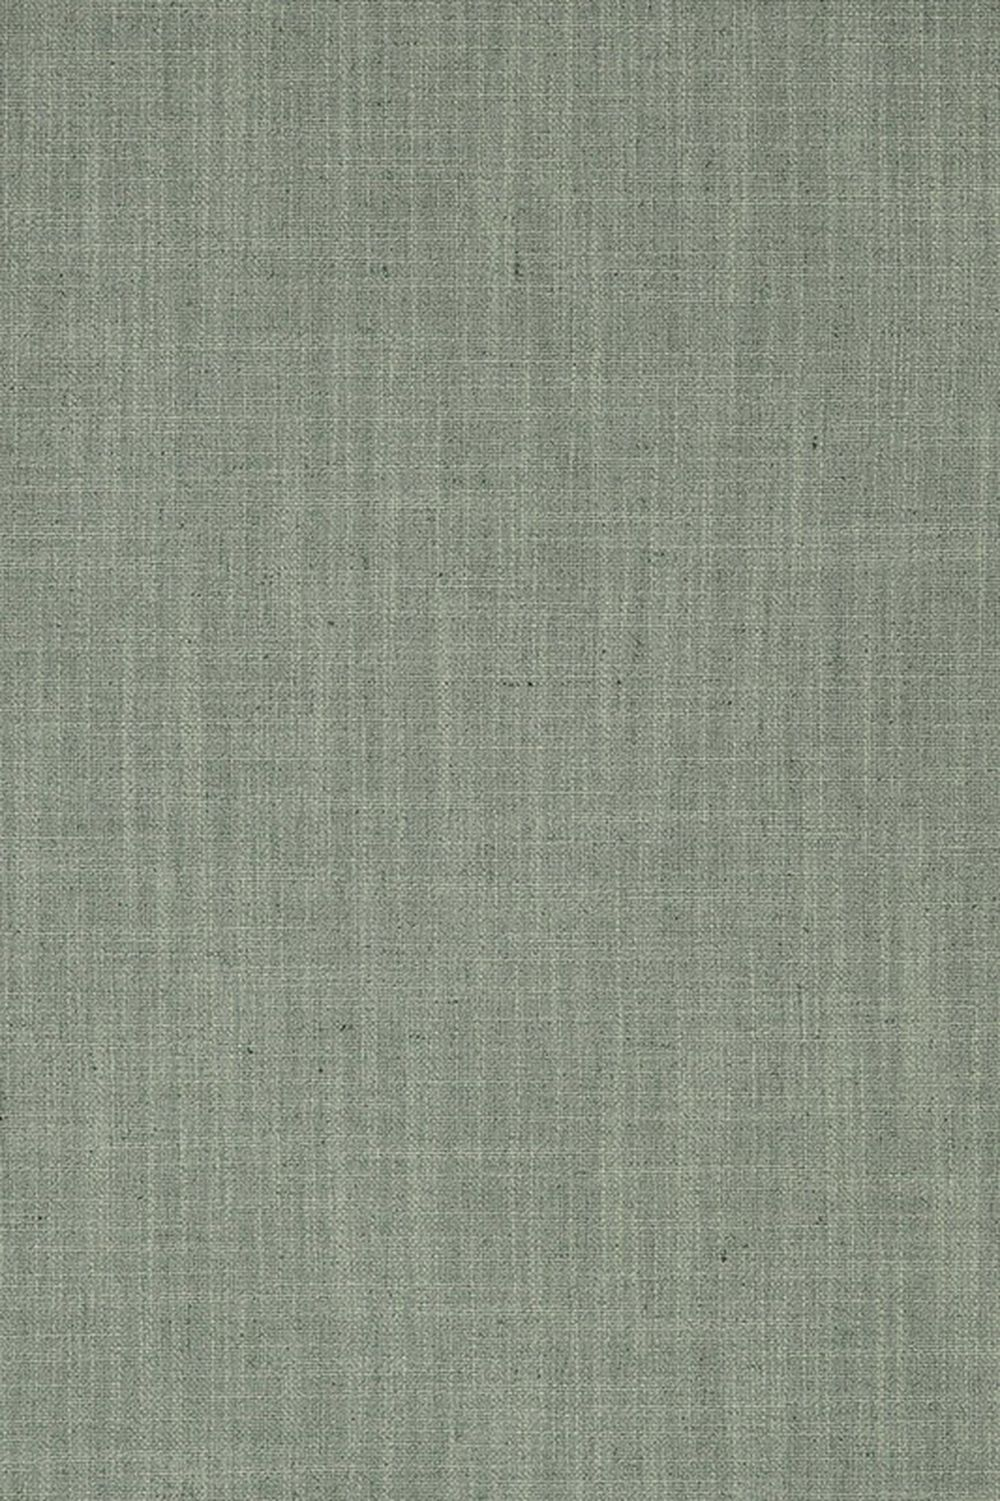 Photo of the fabric Lusk Moonstone swatch by Pegasus. Use for Upholstery Heavy Duty, Accessory. Style of Plain, Texture